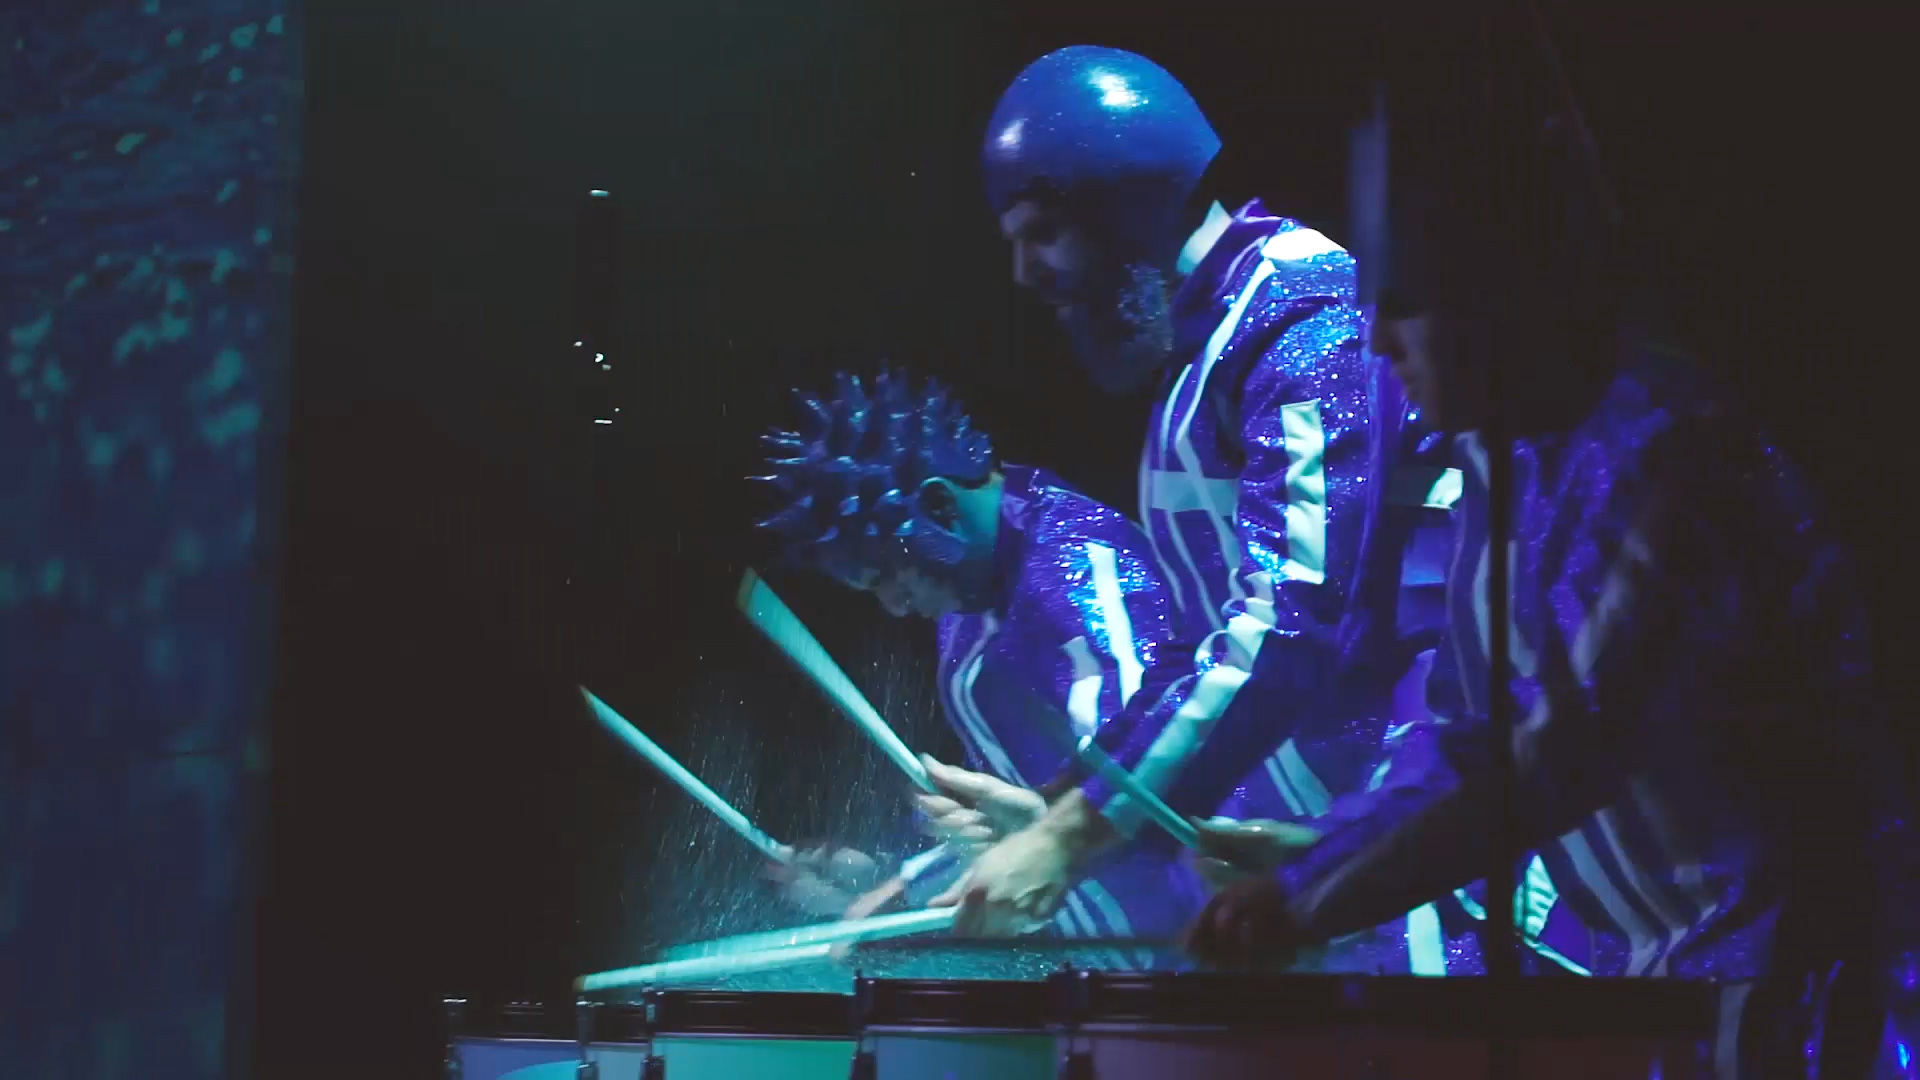 LED drum act